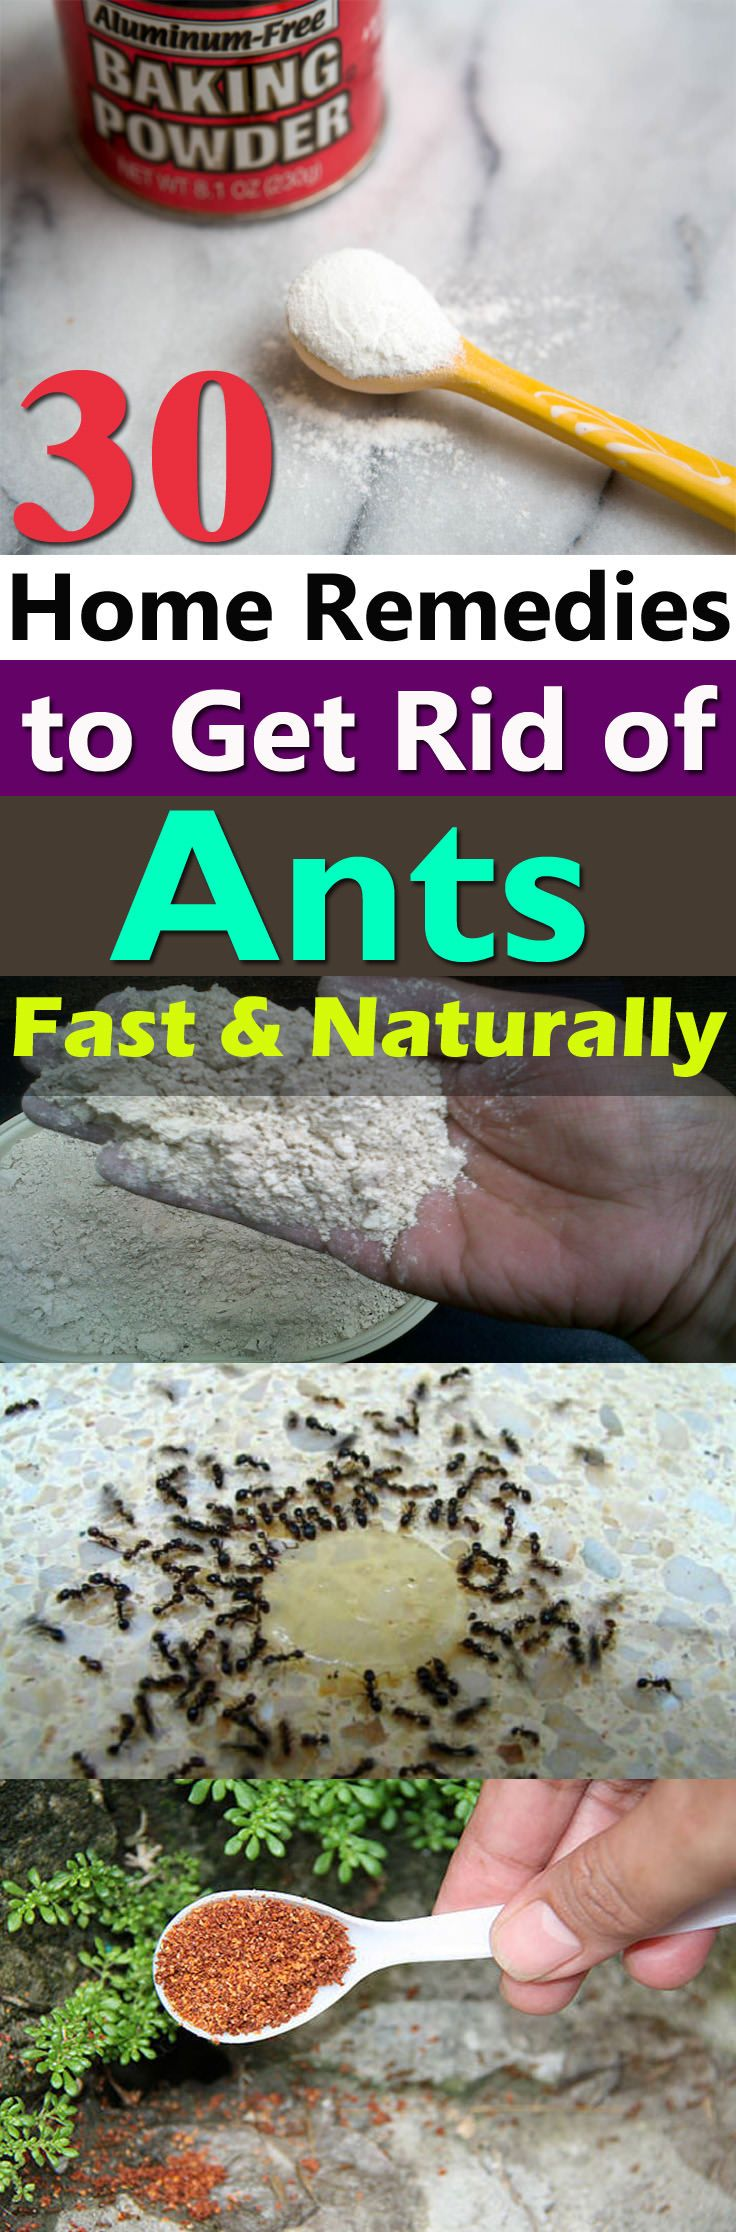 25 unique get rid of ants ideas on pinterest ant spray ant killer spray and ants repellant. Black Bedroom Furniture Sets. Home Design Ideas